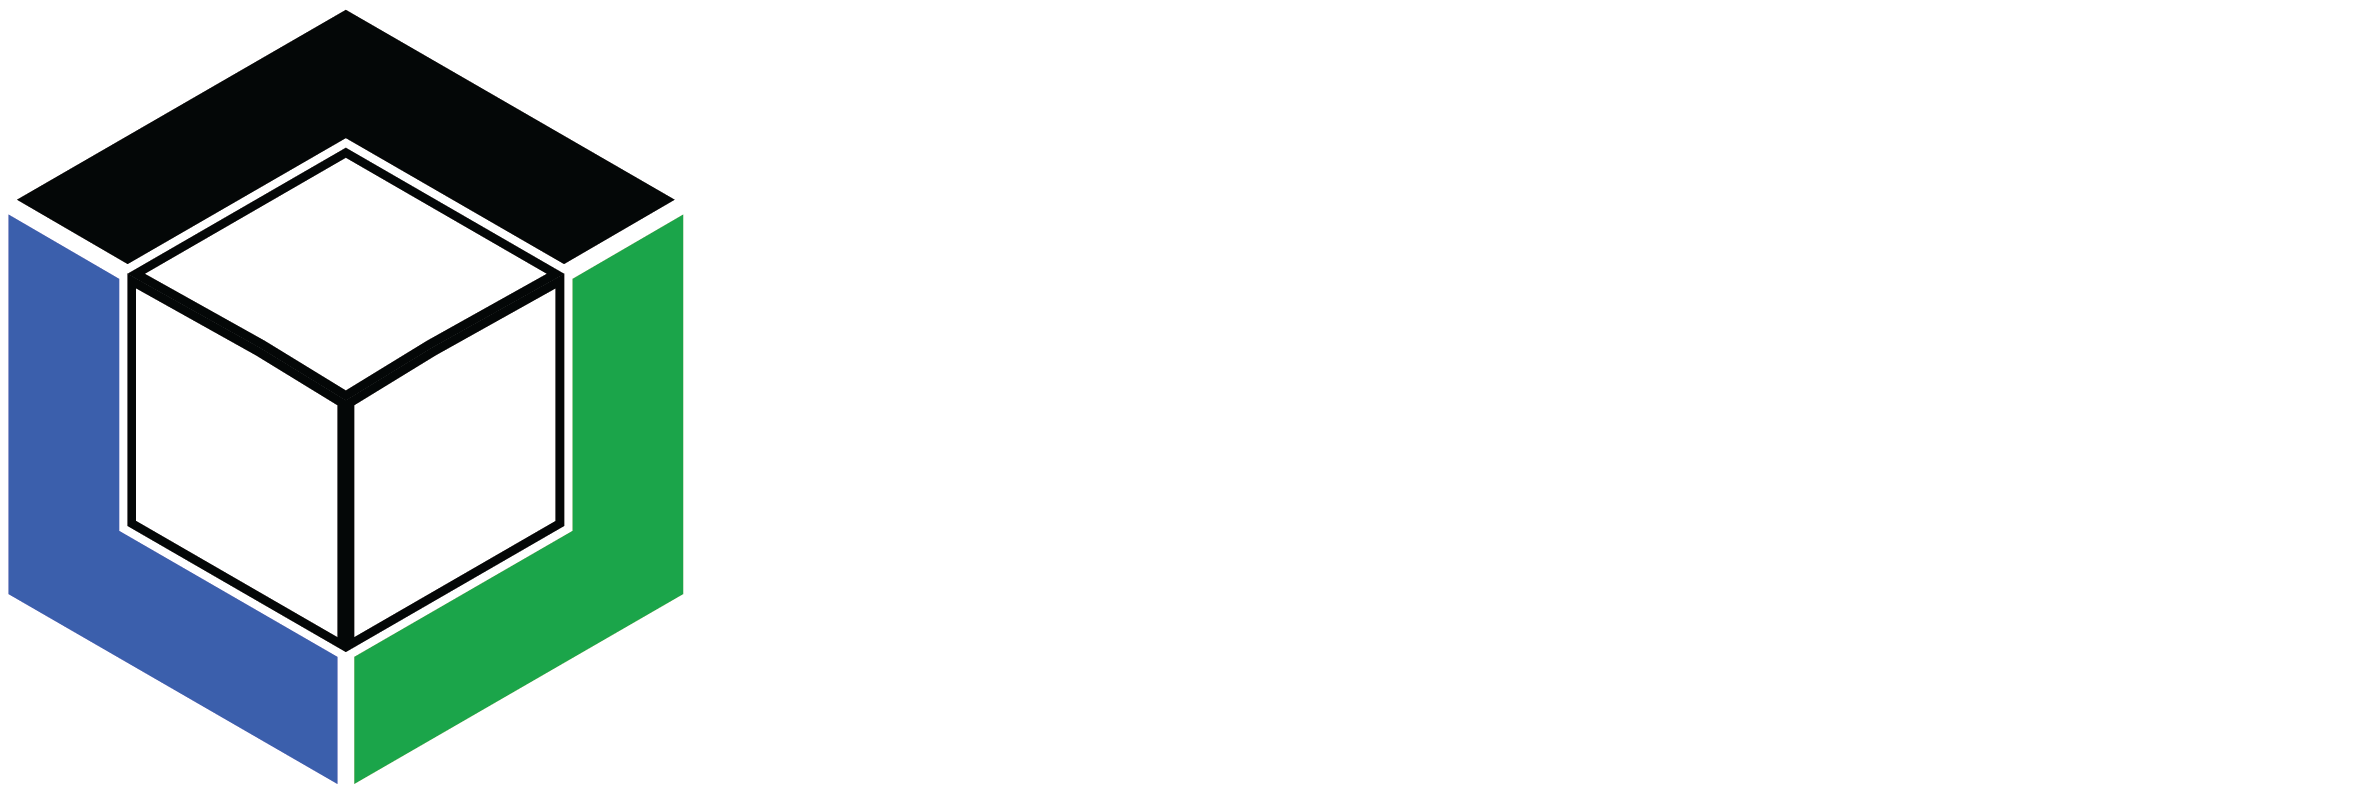 LongView Investment Management Logo